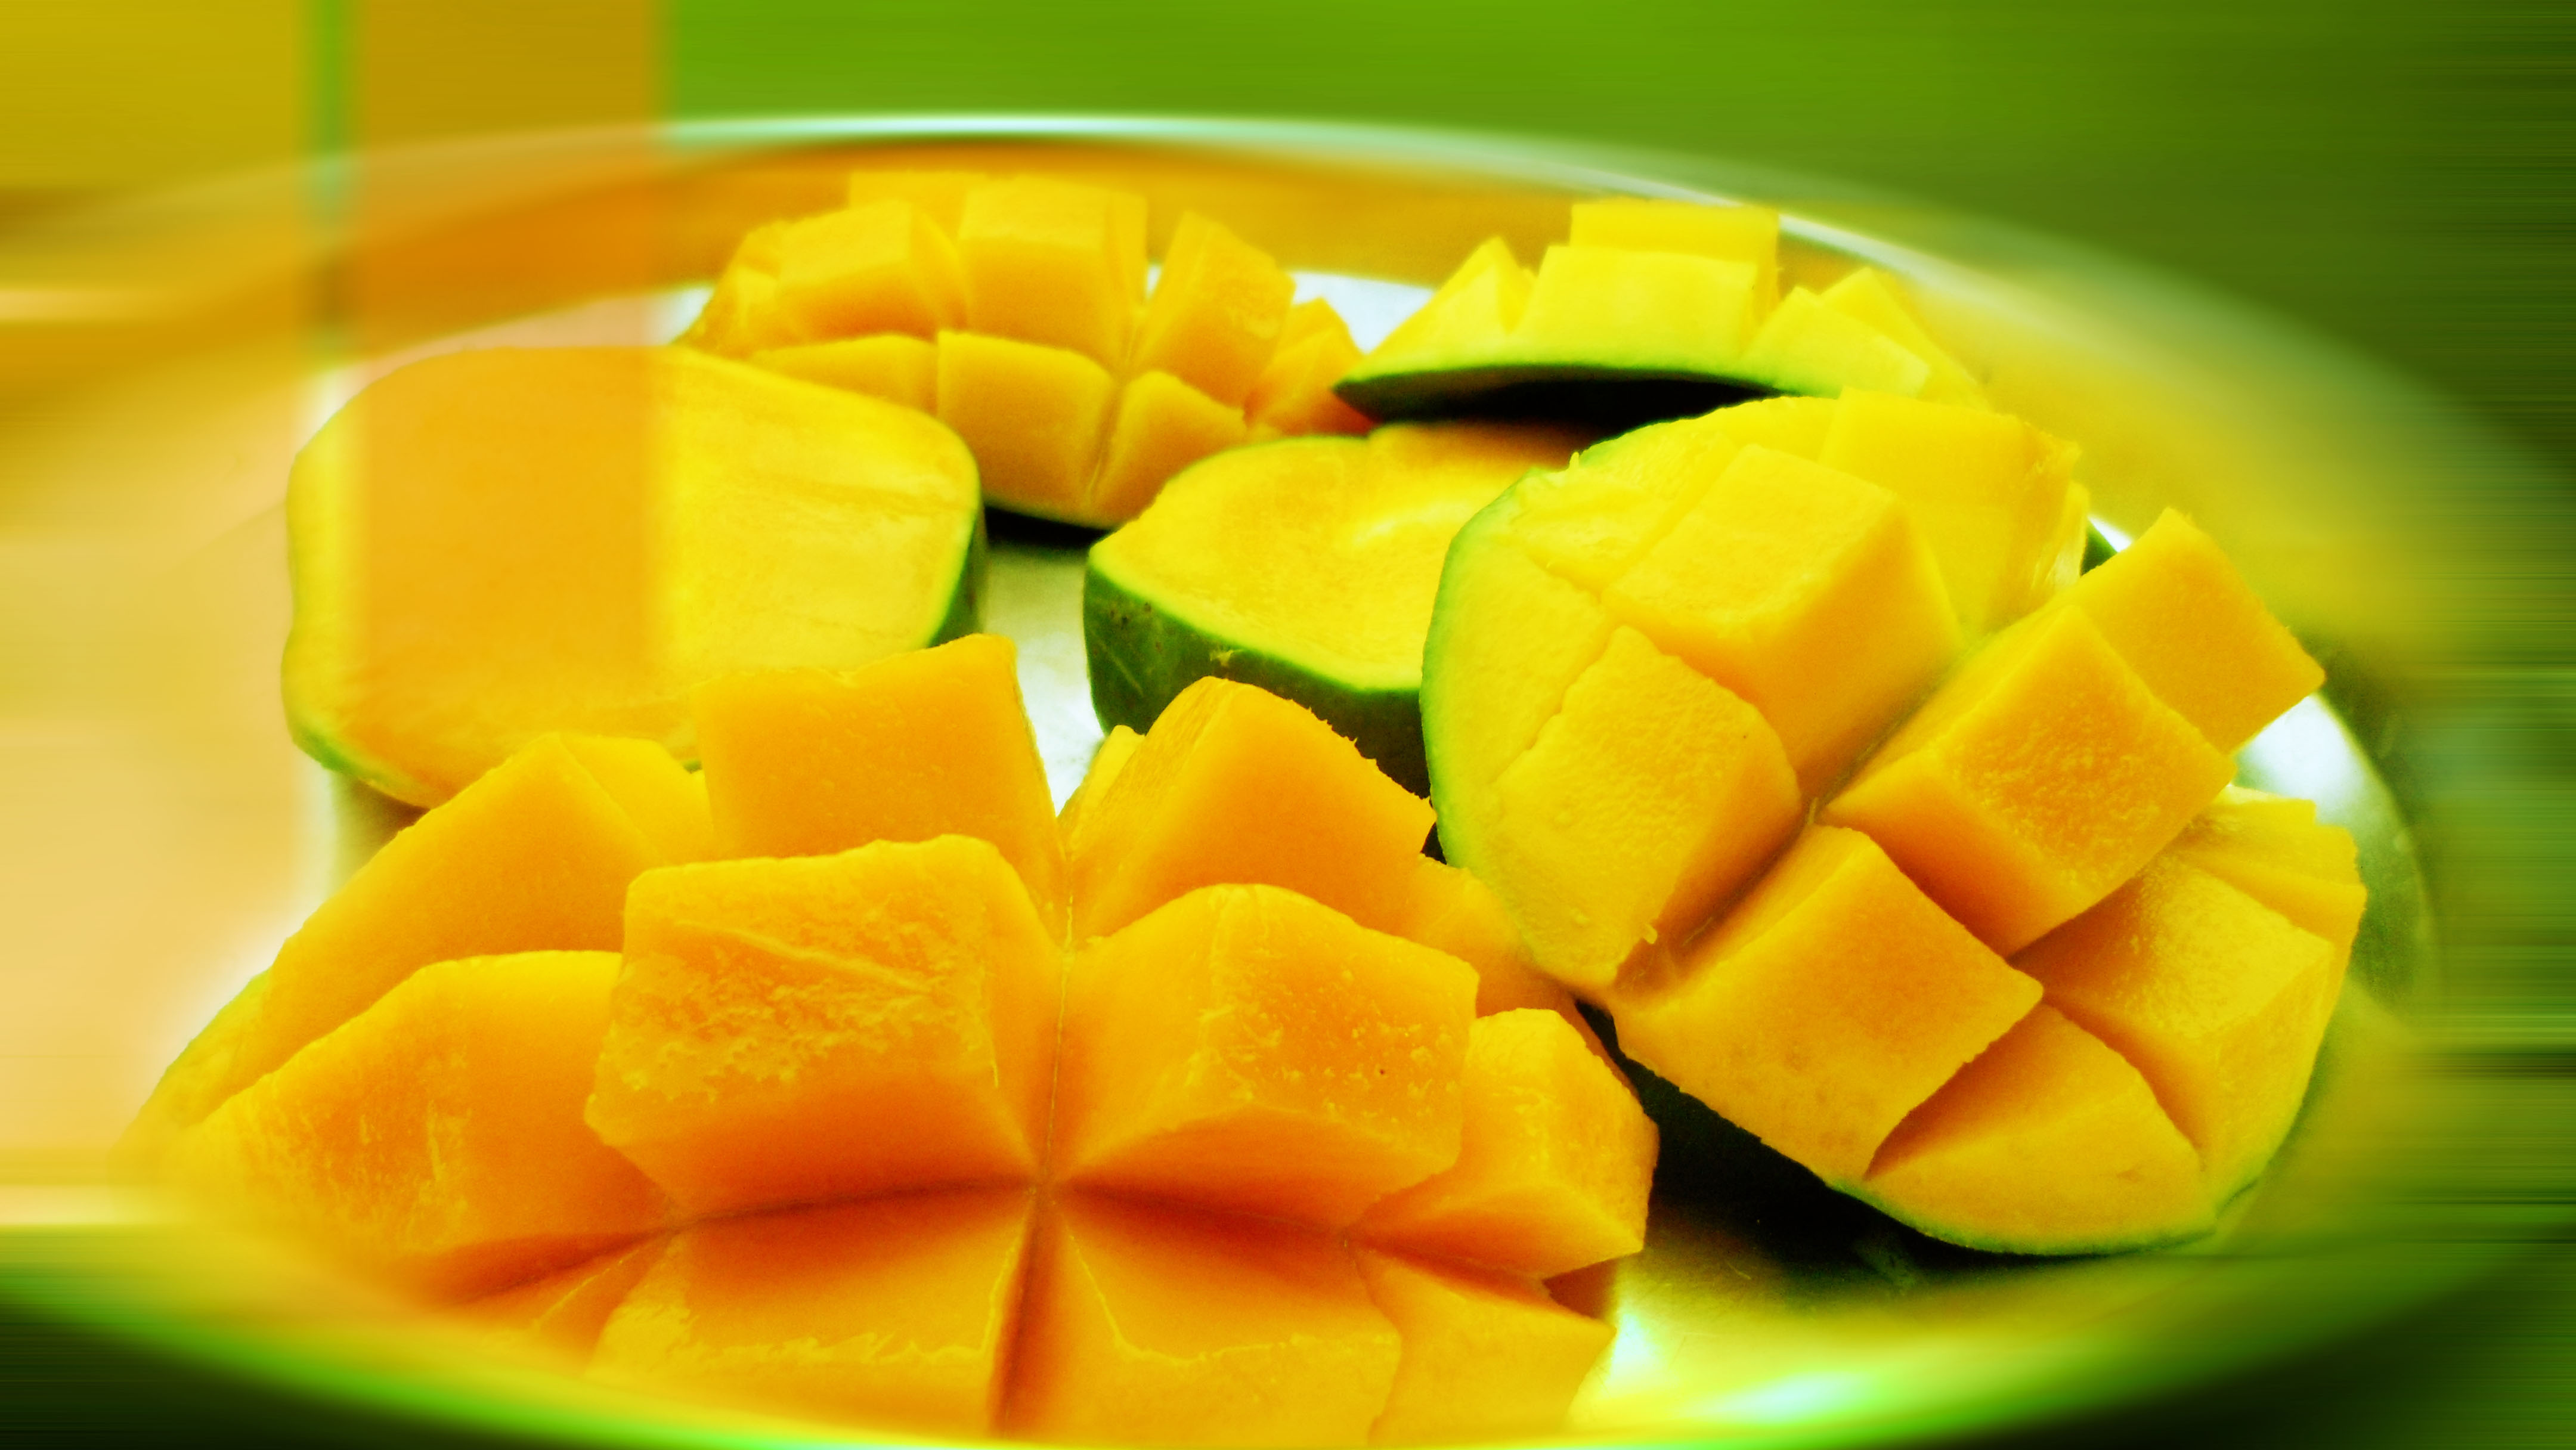 5 Mango Hd Wallpapers Background Images Wallpaper Abyss